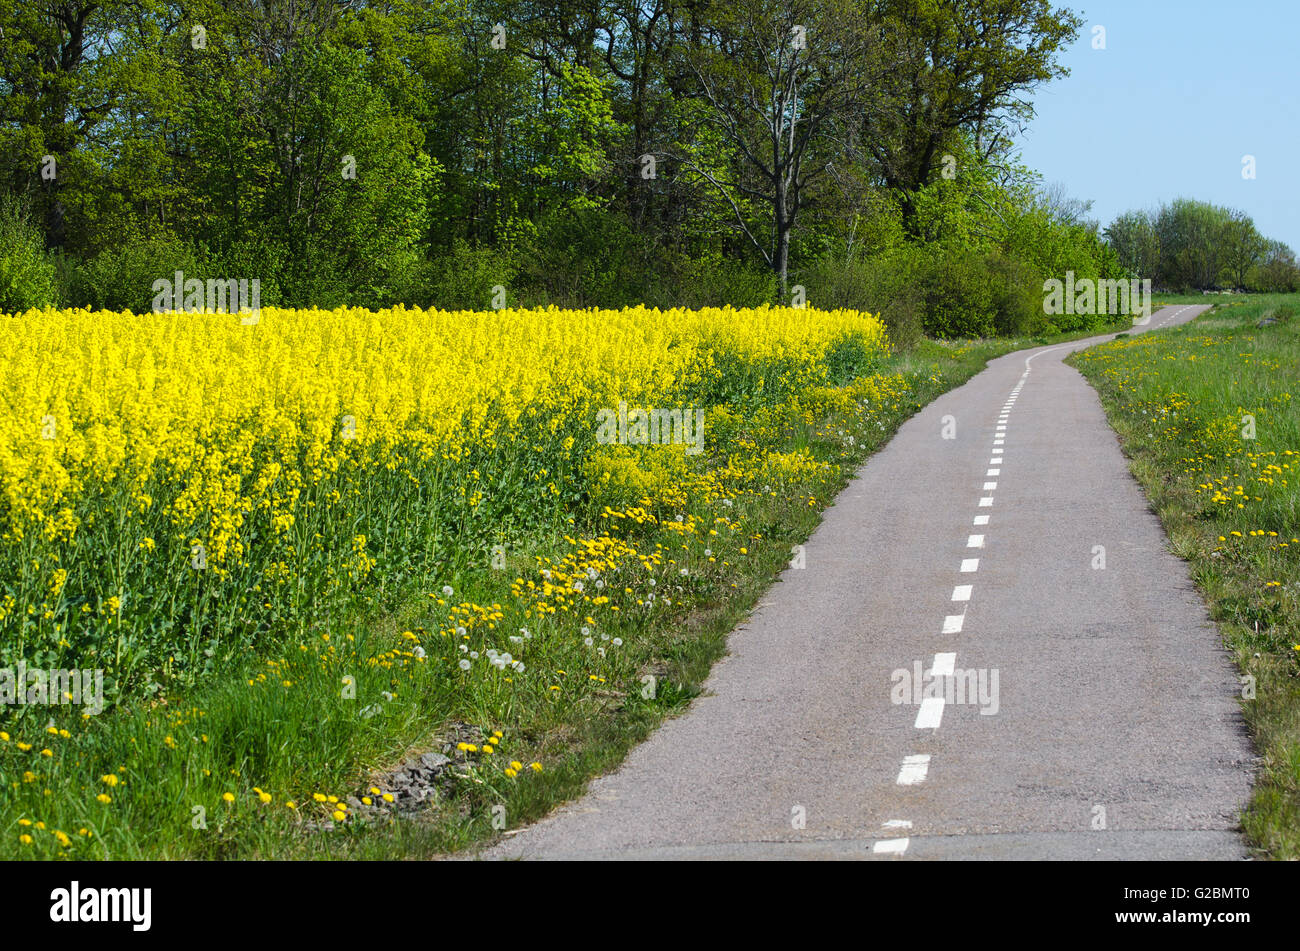 Cycleway in a spring colored landscape - Stock Image